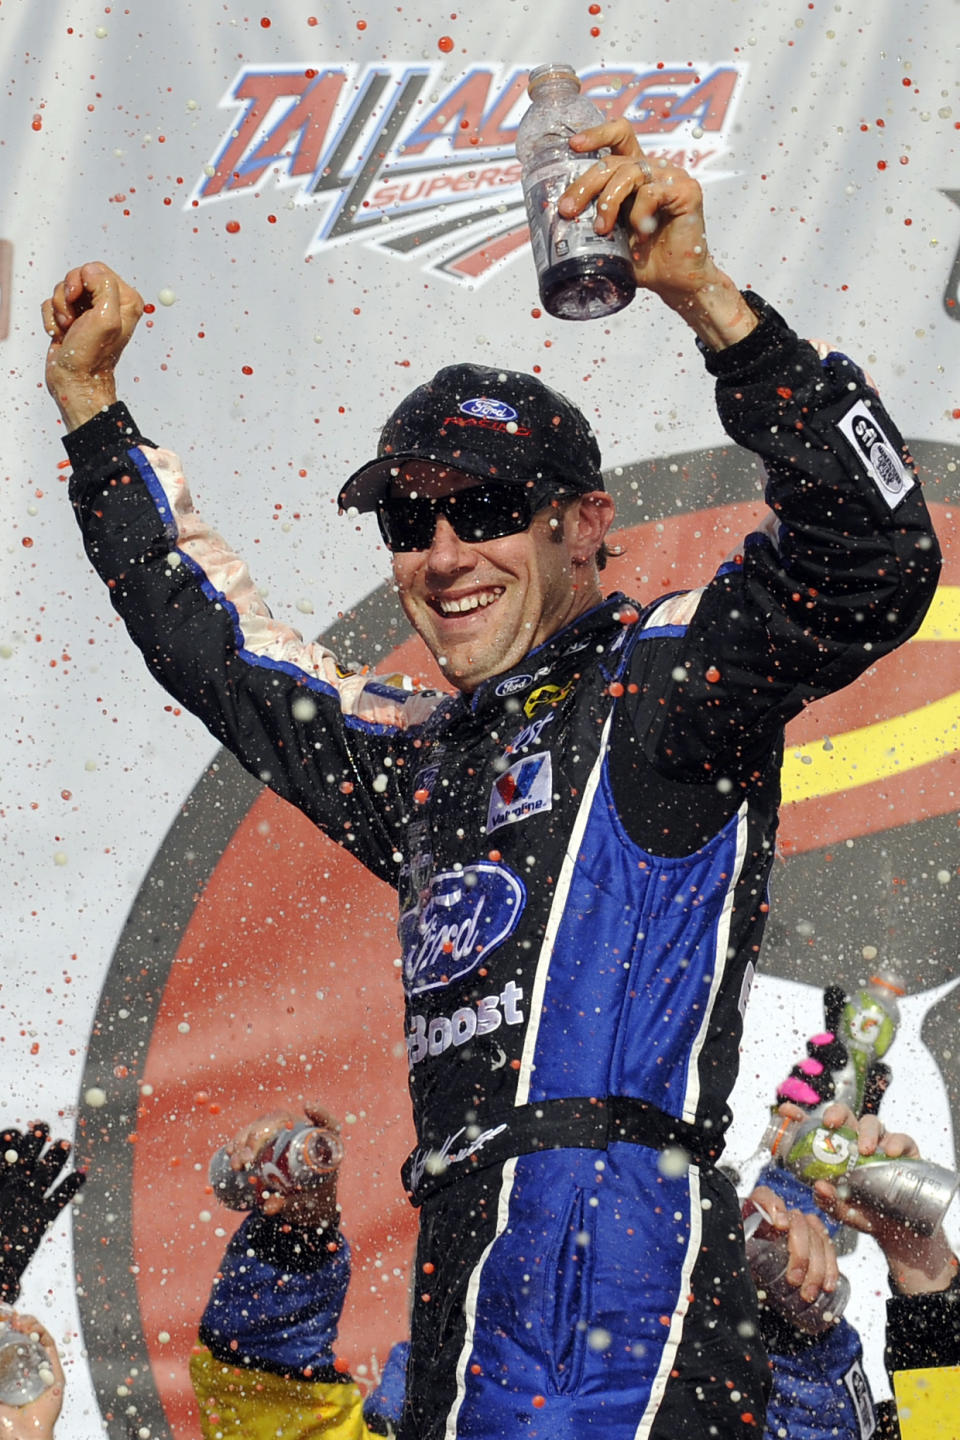 Matt Kenseth celebrates in Victory Lane after winning the NASCAR Sprint Cup Series auto race at Talladega Superspeedway in Talladega, Ala., Sunday, Oct. 7, 2012. (AP Photo/Rainier Ehrhardt)